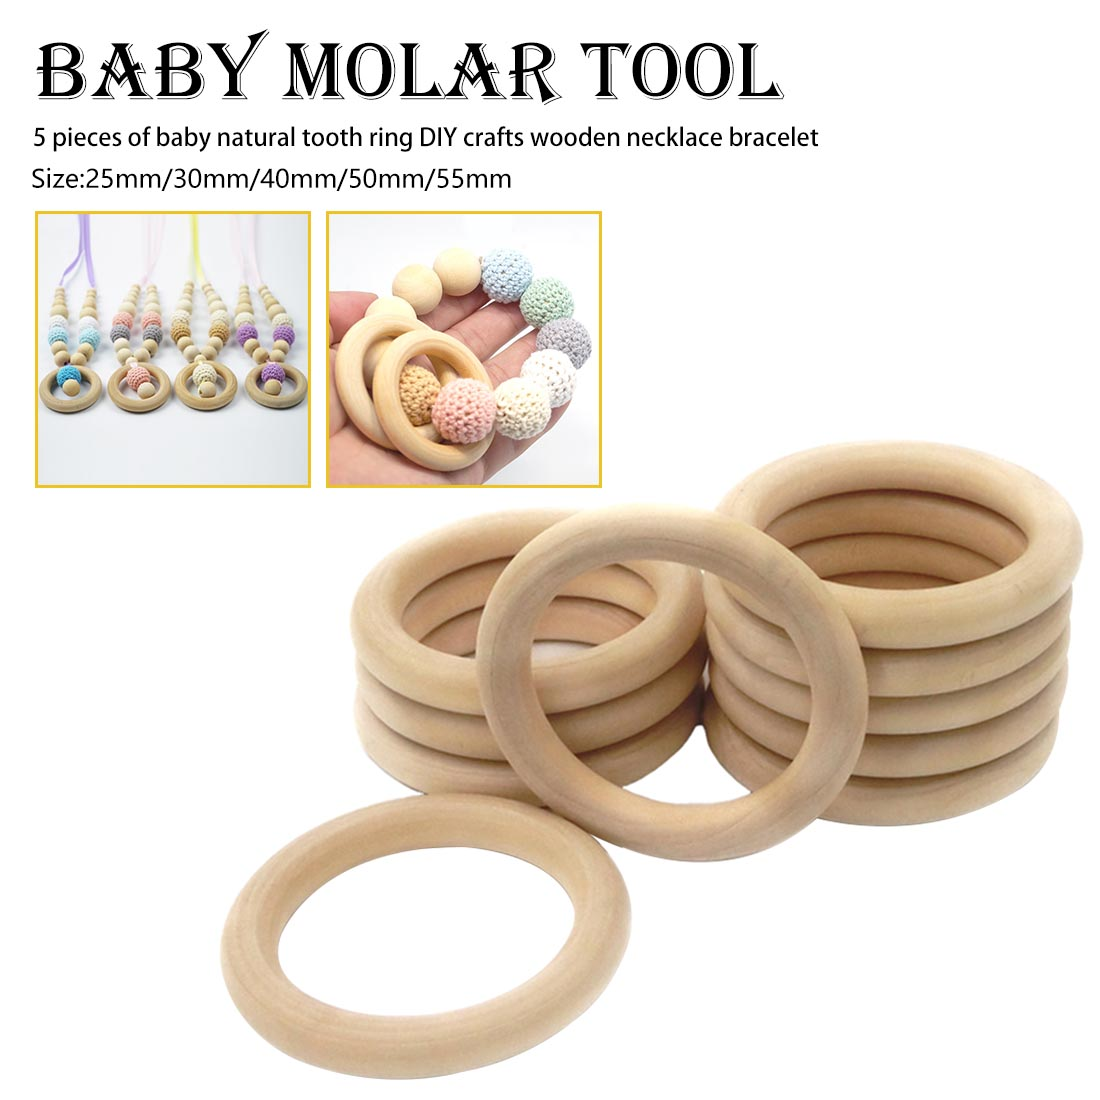 Wood Ring Baby Teething Rings DIY Making Baby Bracelet Necklace Wooden Teether